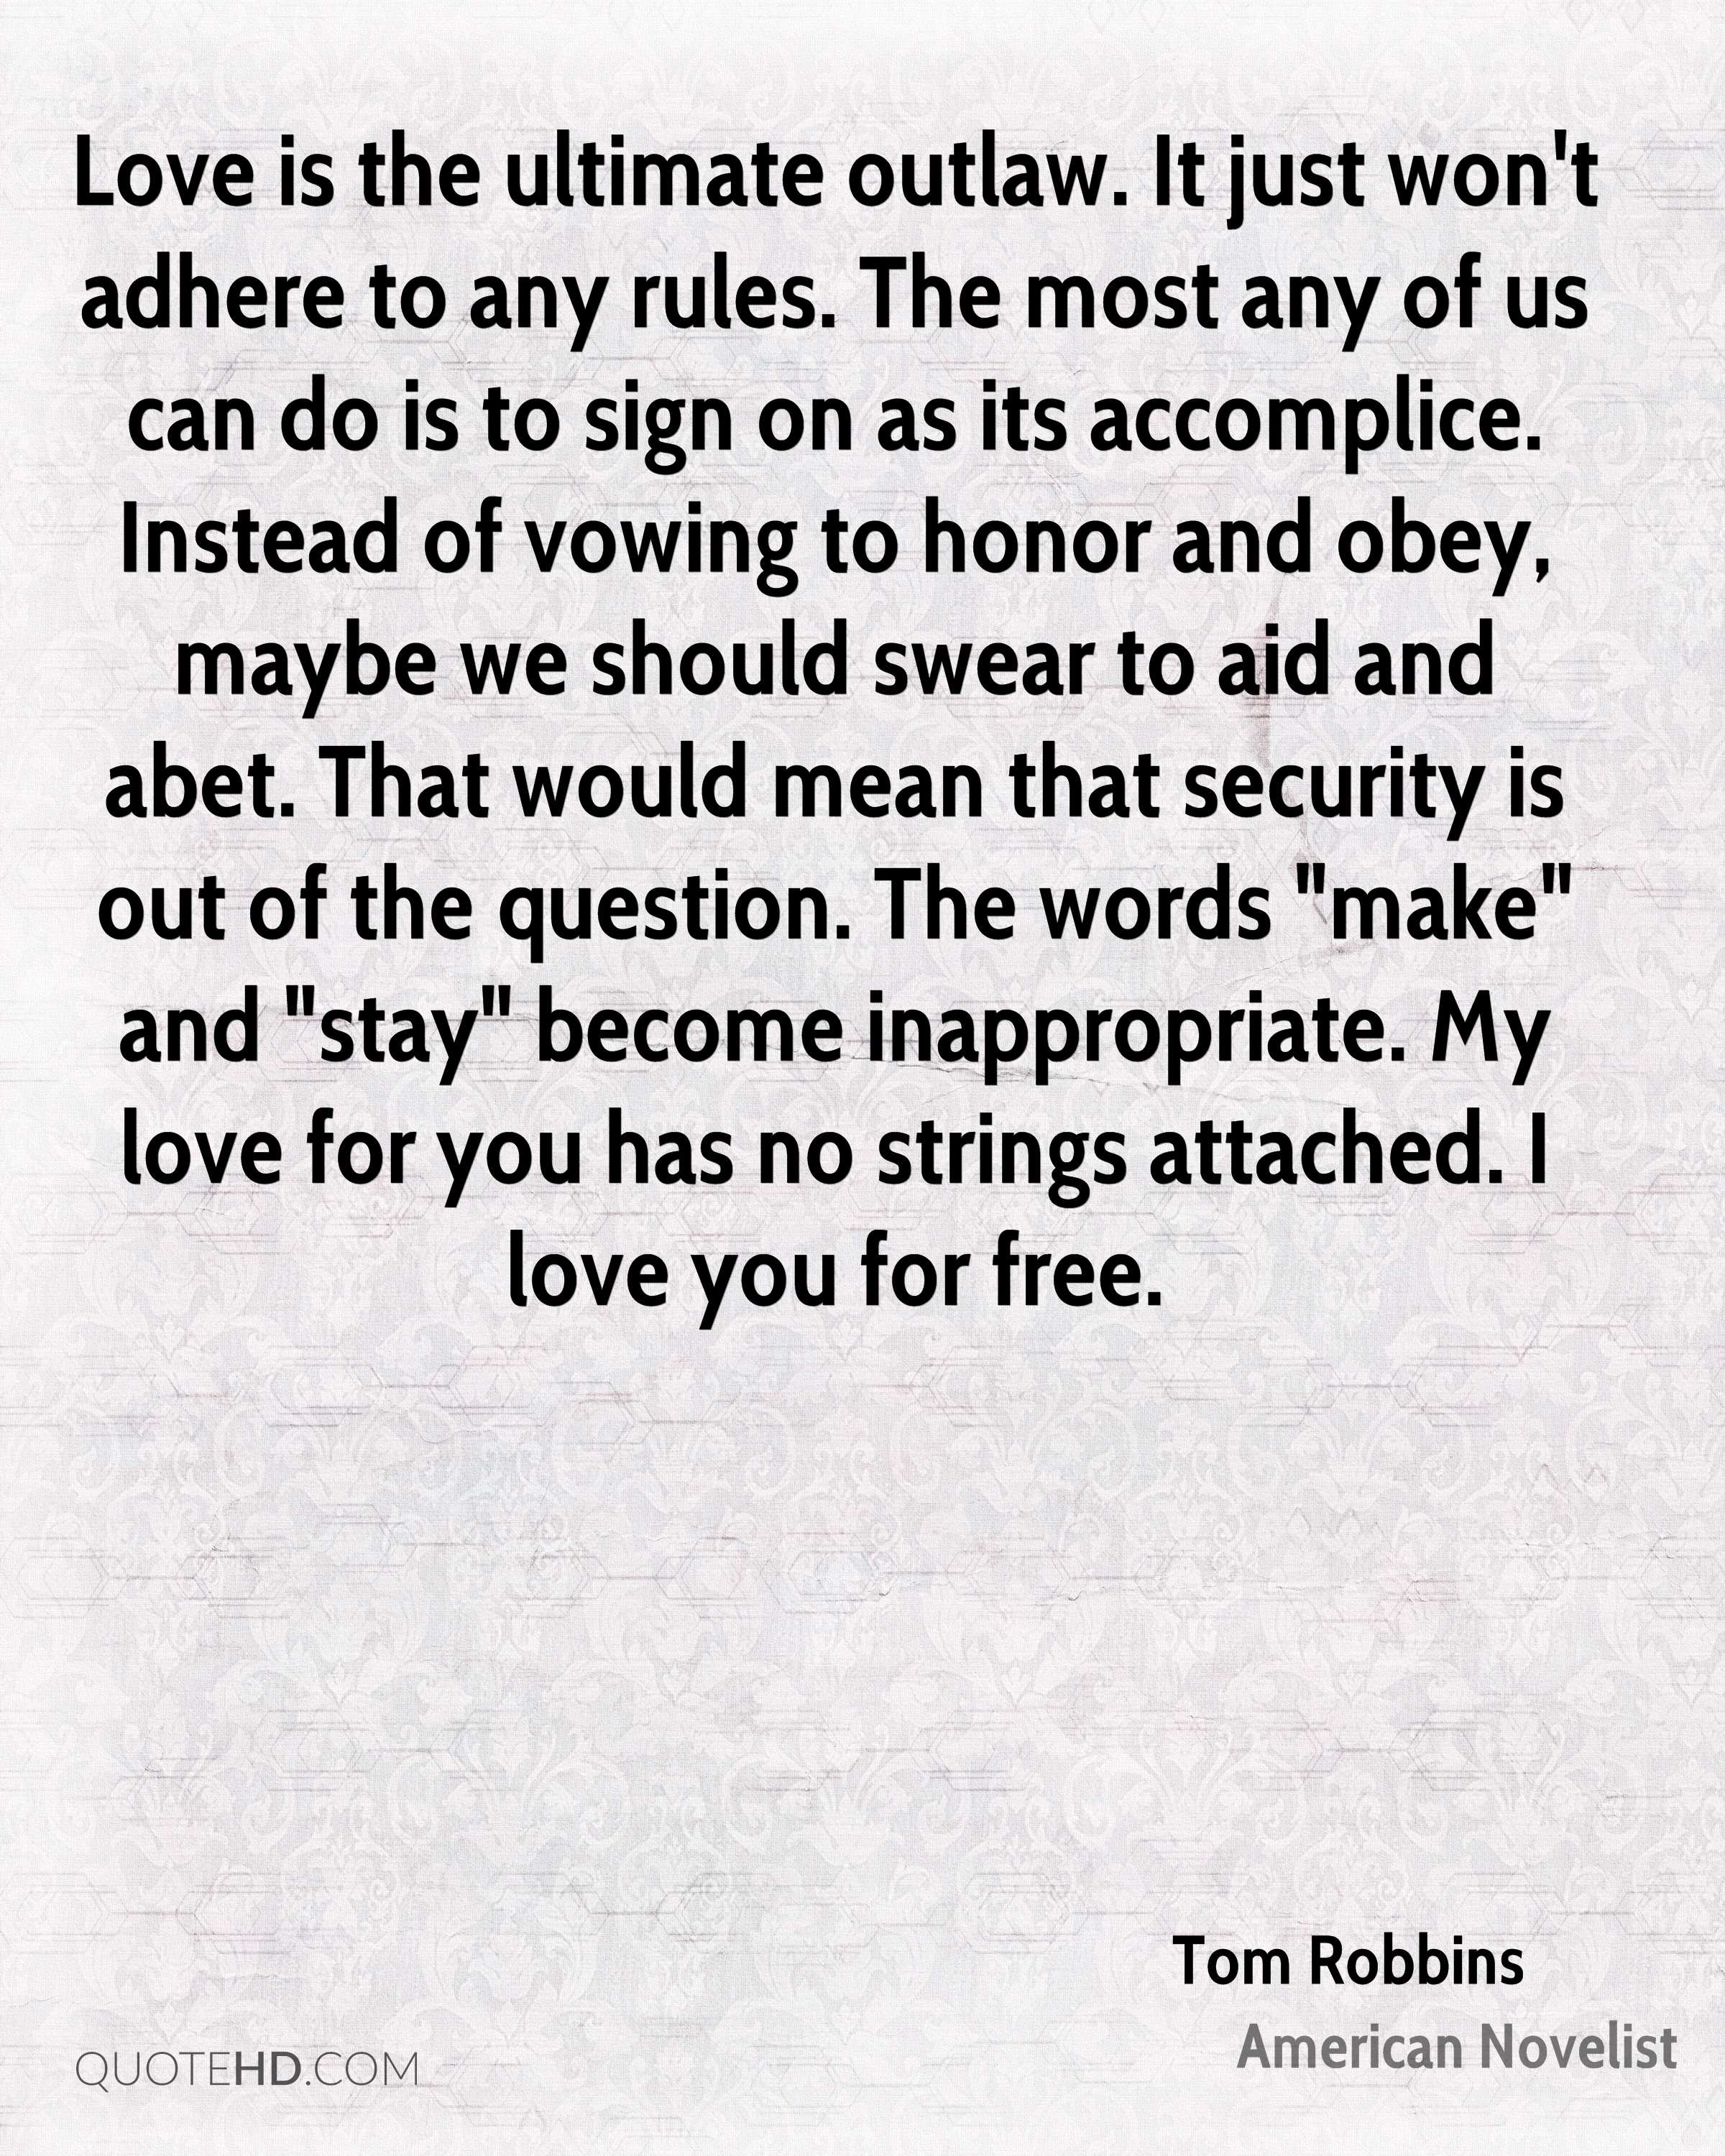 """Love is the ultimate outlaw. It just won't adhere to any rules. The most any of us can do is to sign on as its accomplice. Instead of vowing to honor and obey, maybe we should swear to aid and abet. That would mean that security is out of the question. The words """"make"""" and """"stay"""" become inappropriate. My love for you has no strings attached. I love you for free."""